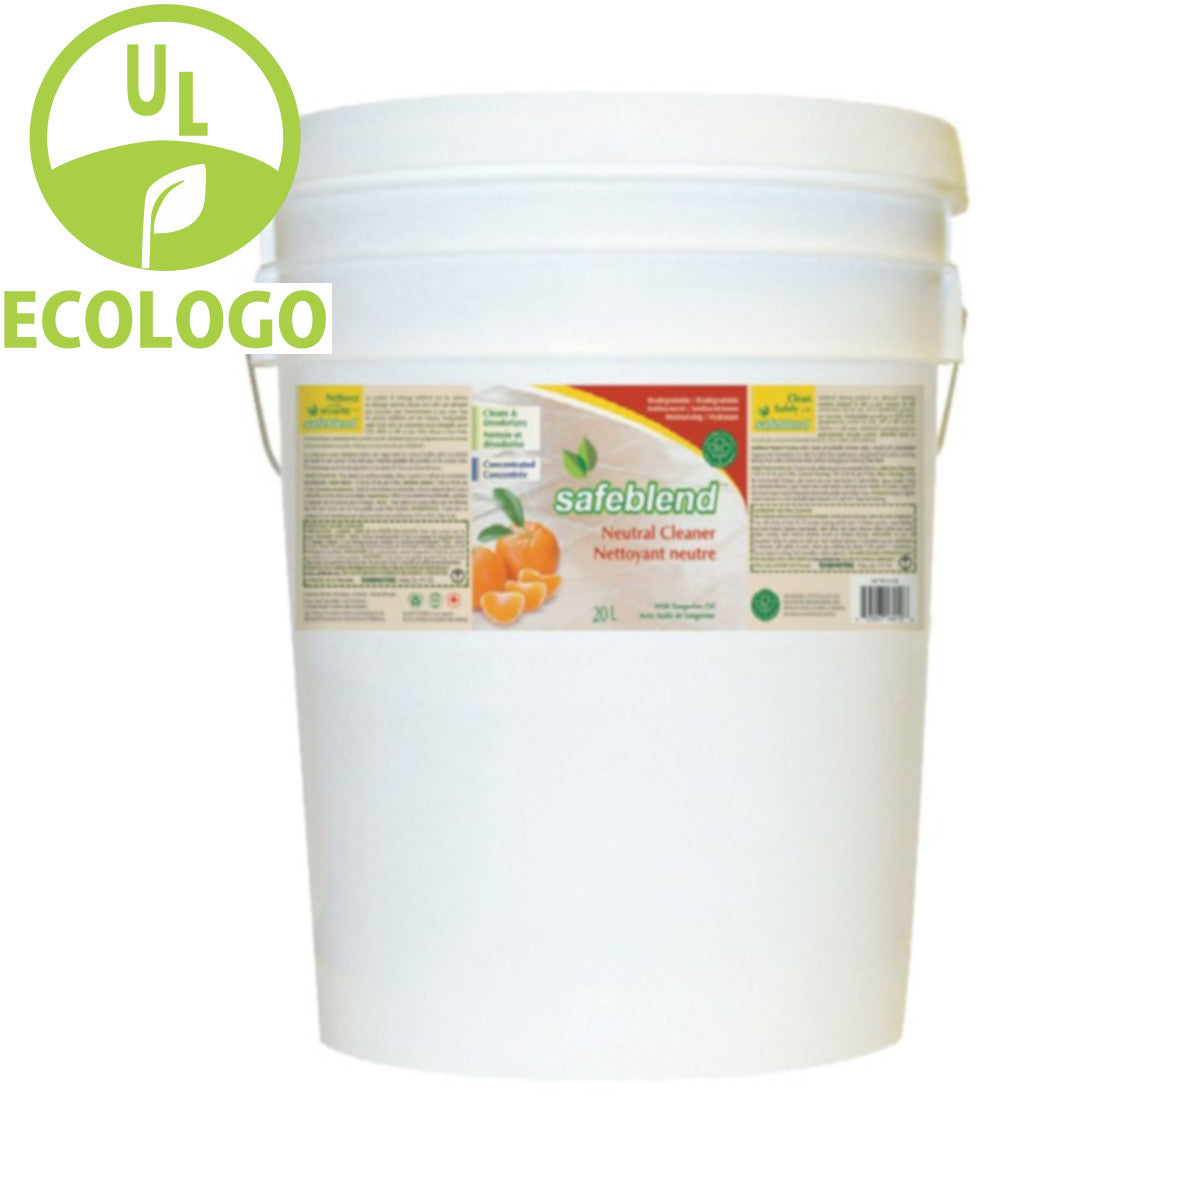 Safeblend EcoLogo Neutral Cleaner (Tangerine Scent) - 20L - Super Vacs